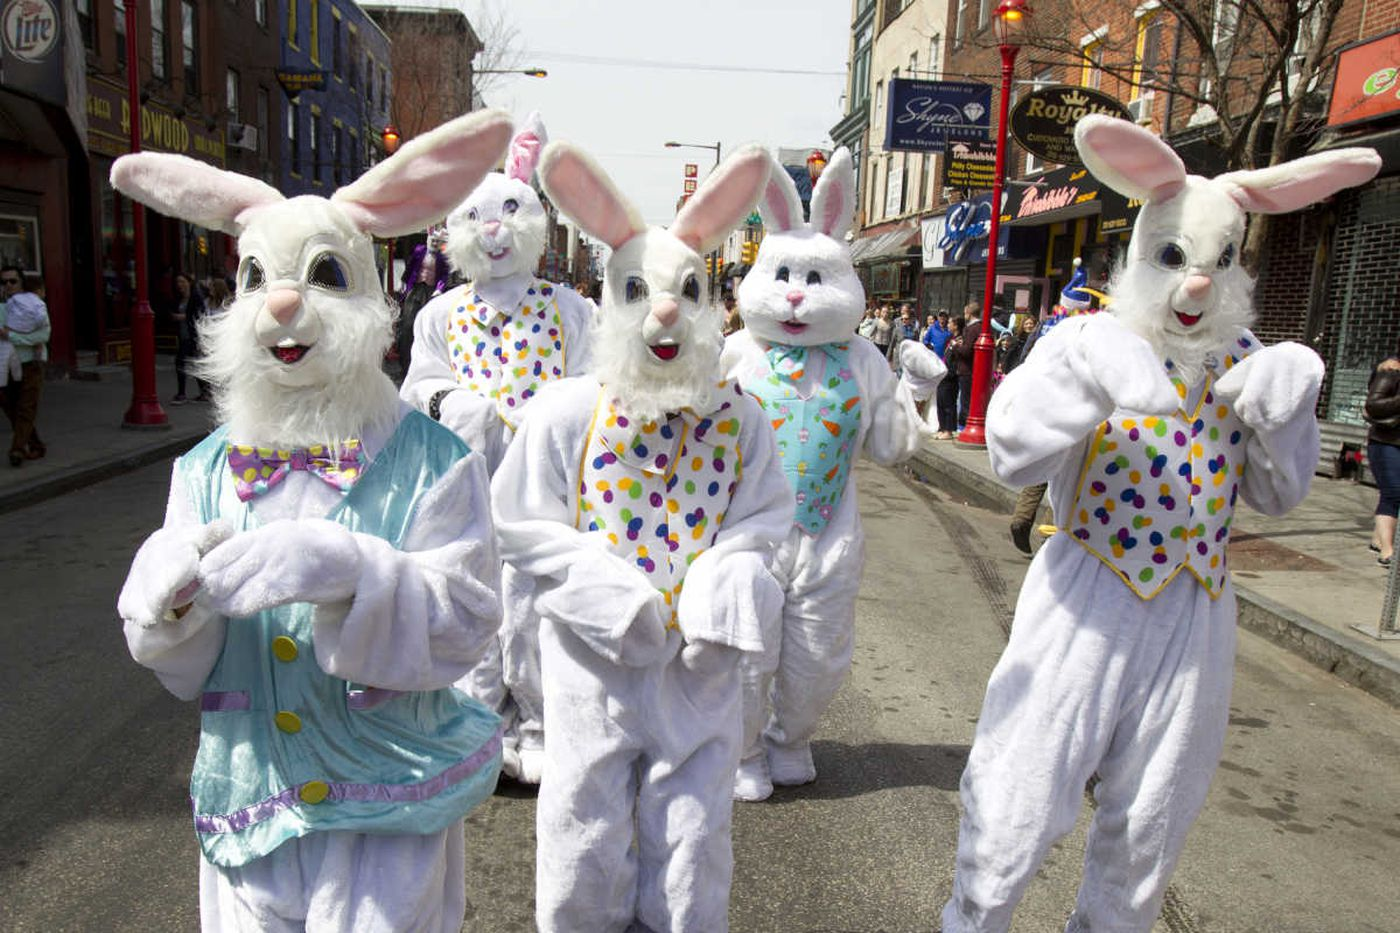 Hang with the Easter bunny or go on an adult egg hunt: The best ways to spend Easter in Philly